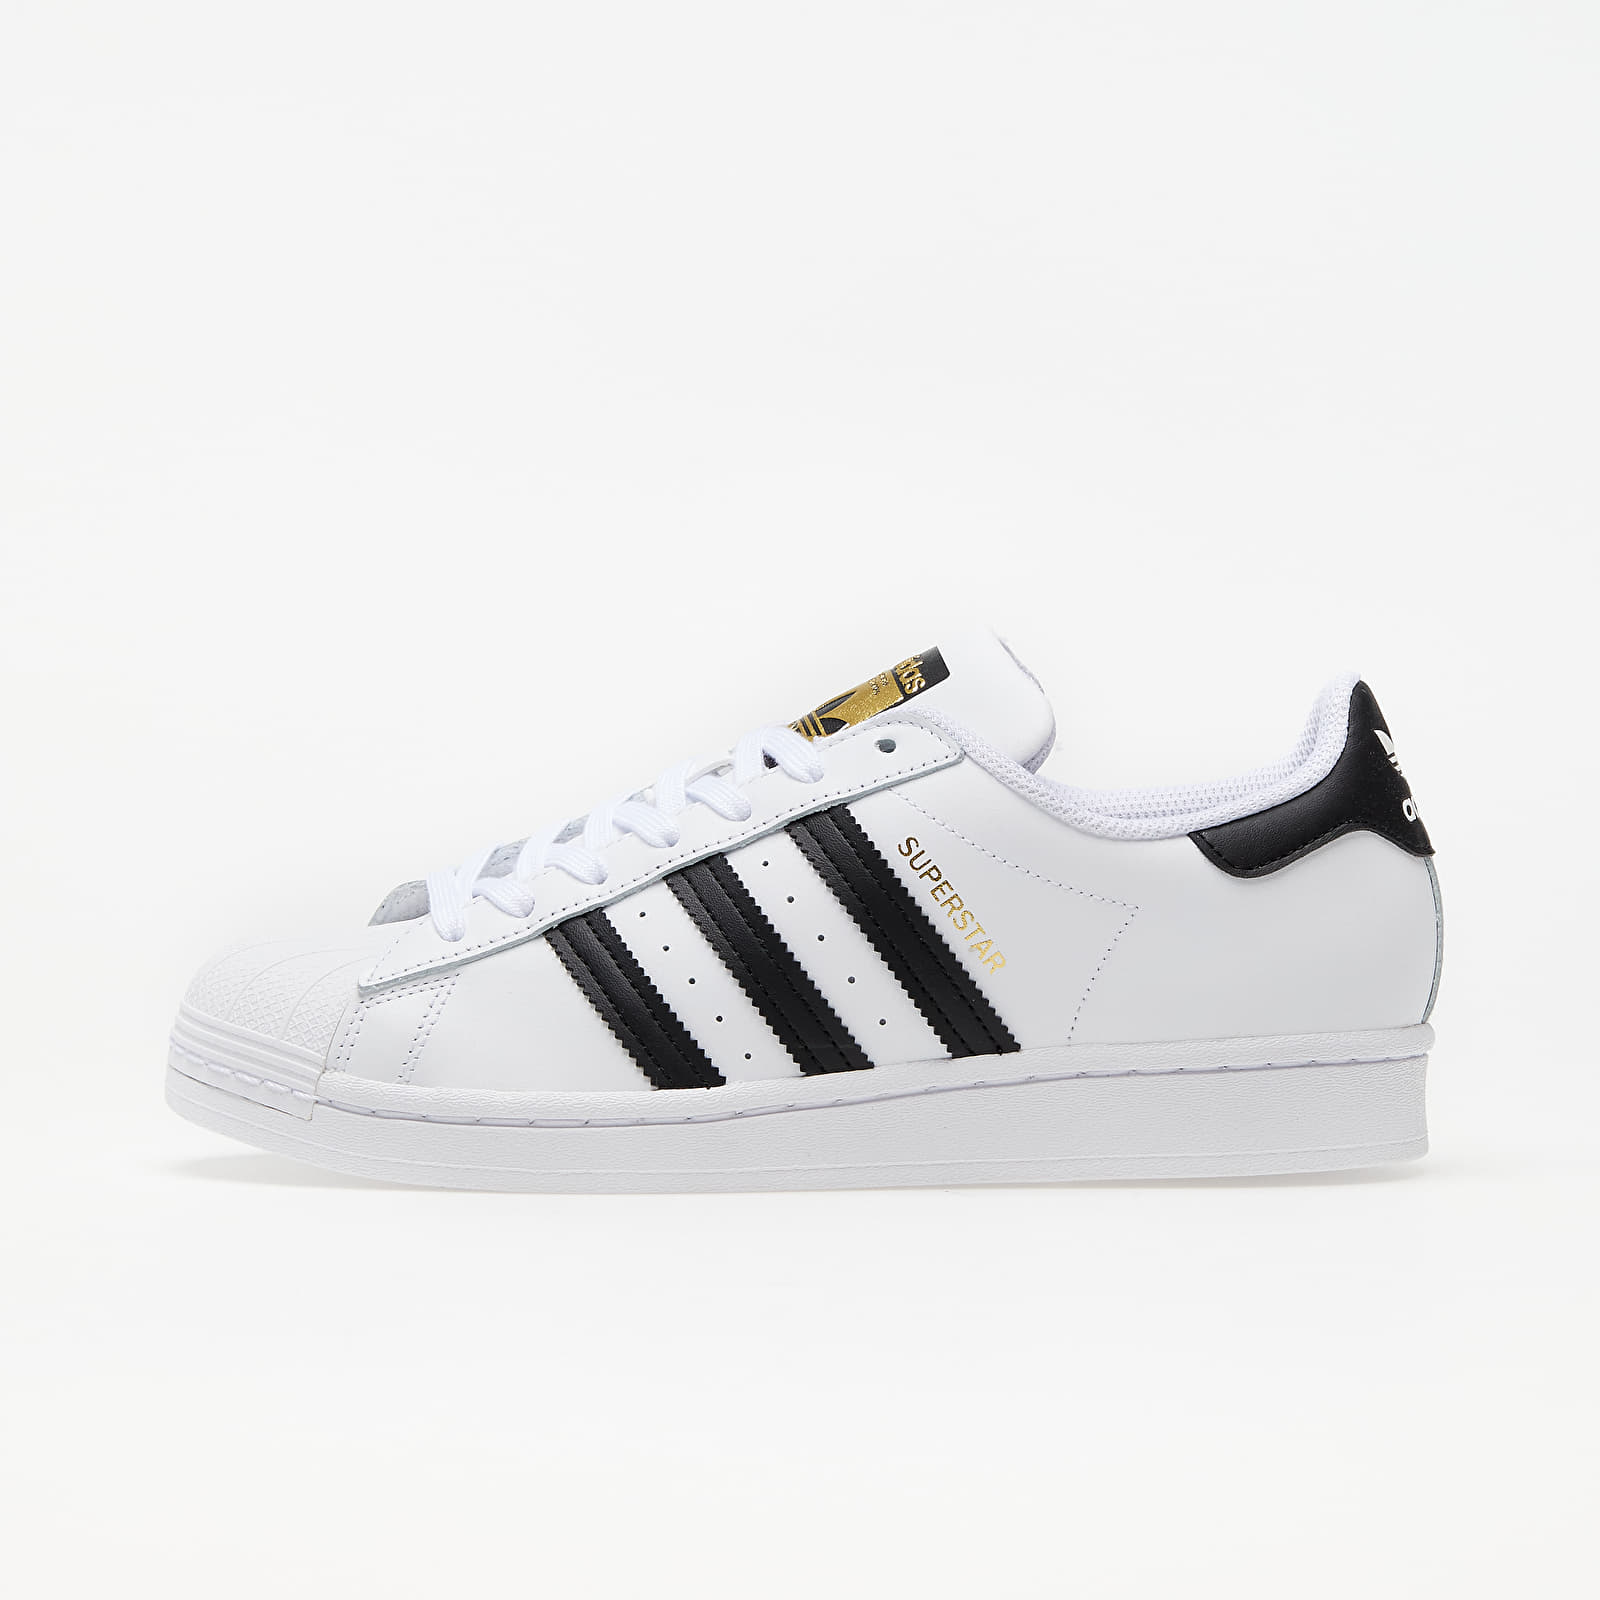 adidas Superstar Ftw White/ Core Black/ Ftw White EUR 36